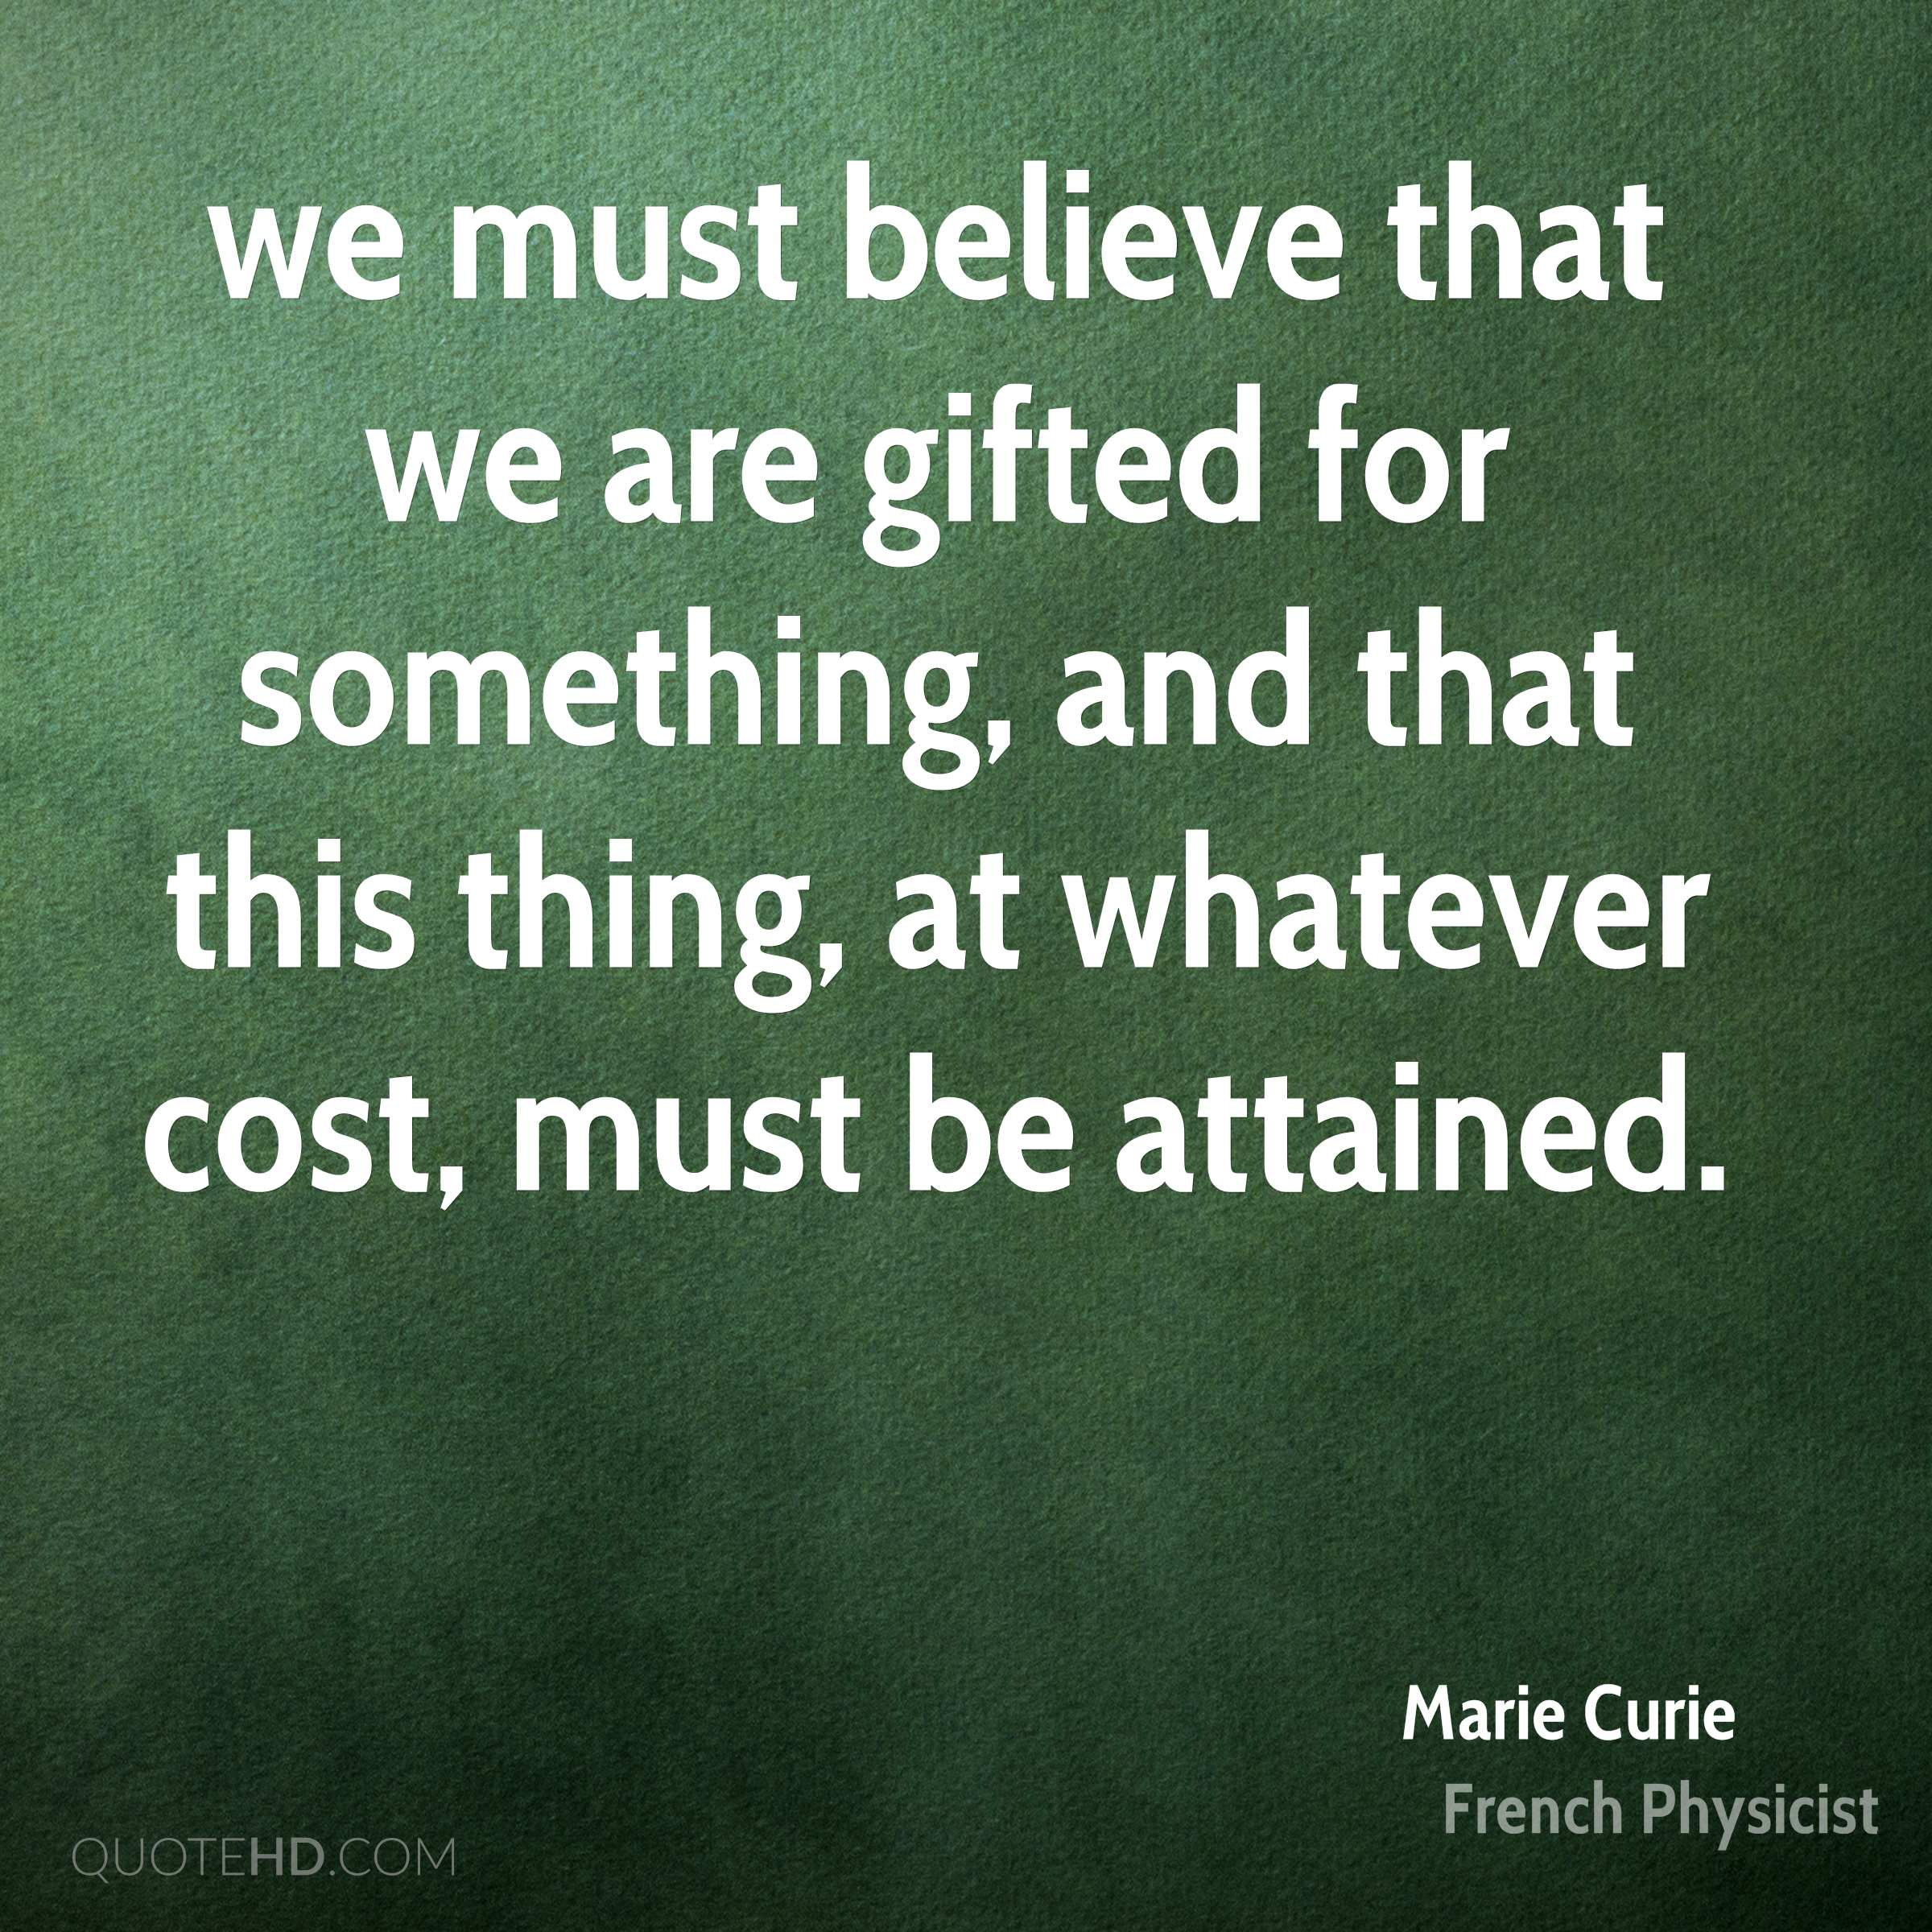 we must believe that we are gifted for something, and that this thing, at whatever cost, must be attained.